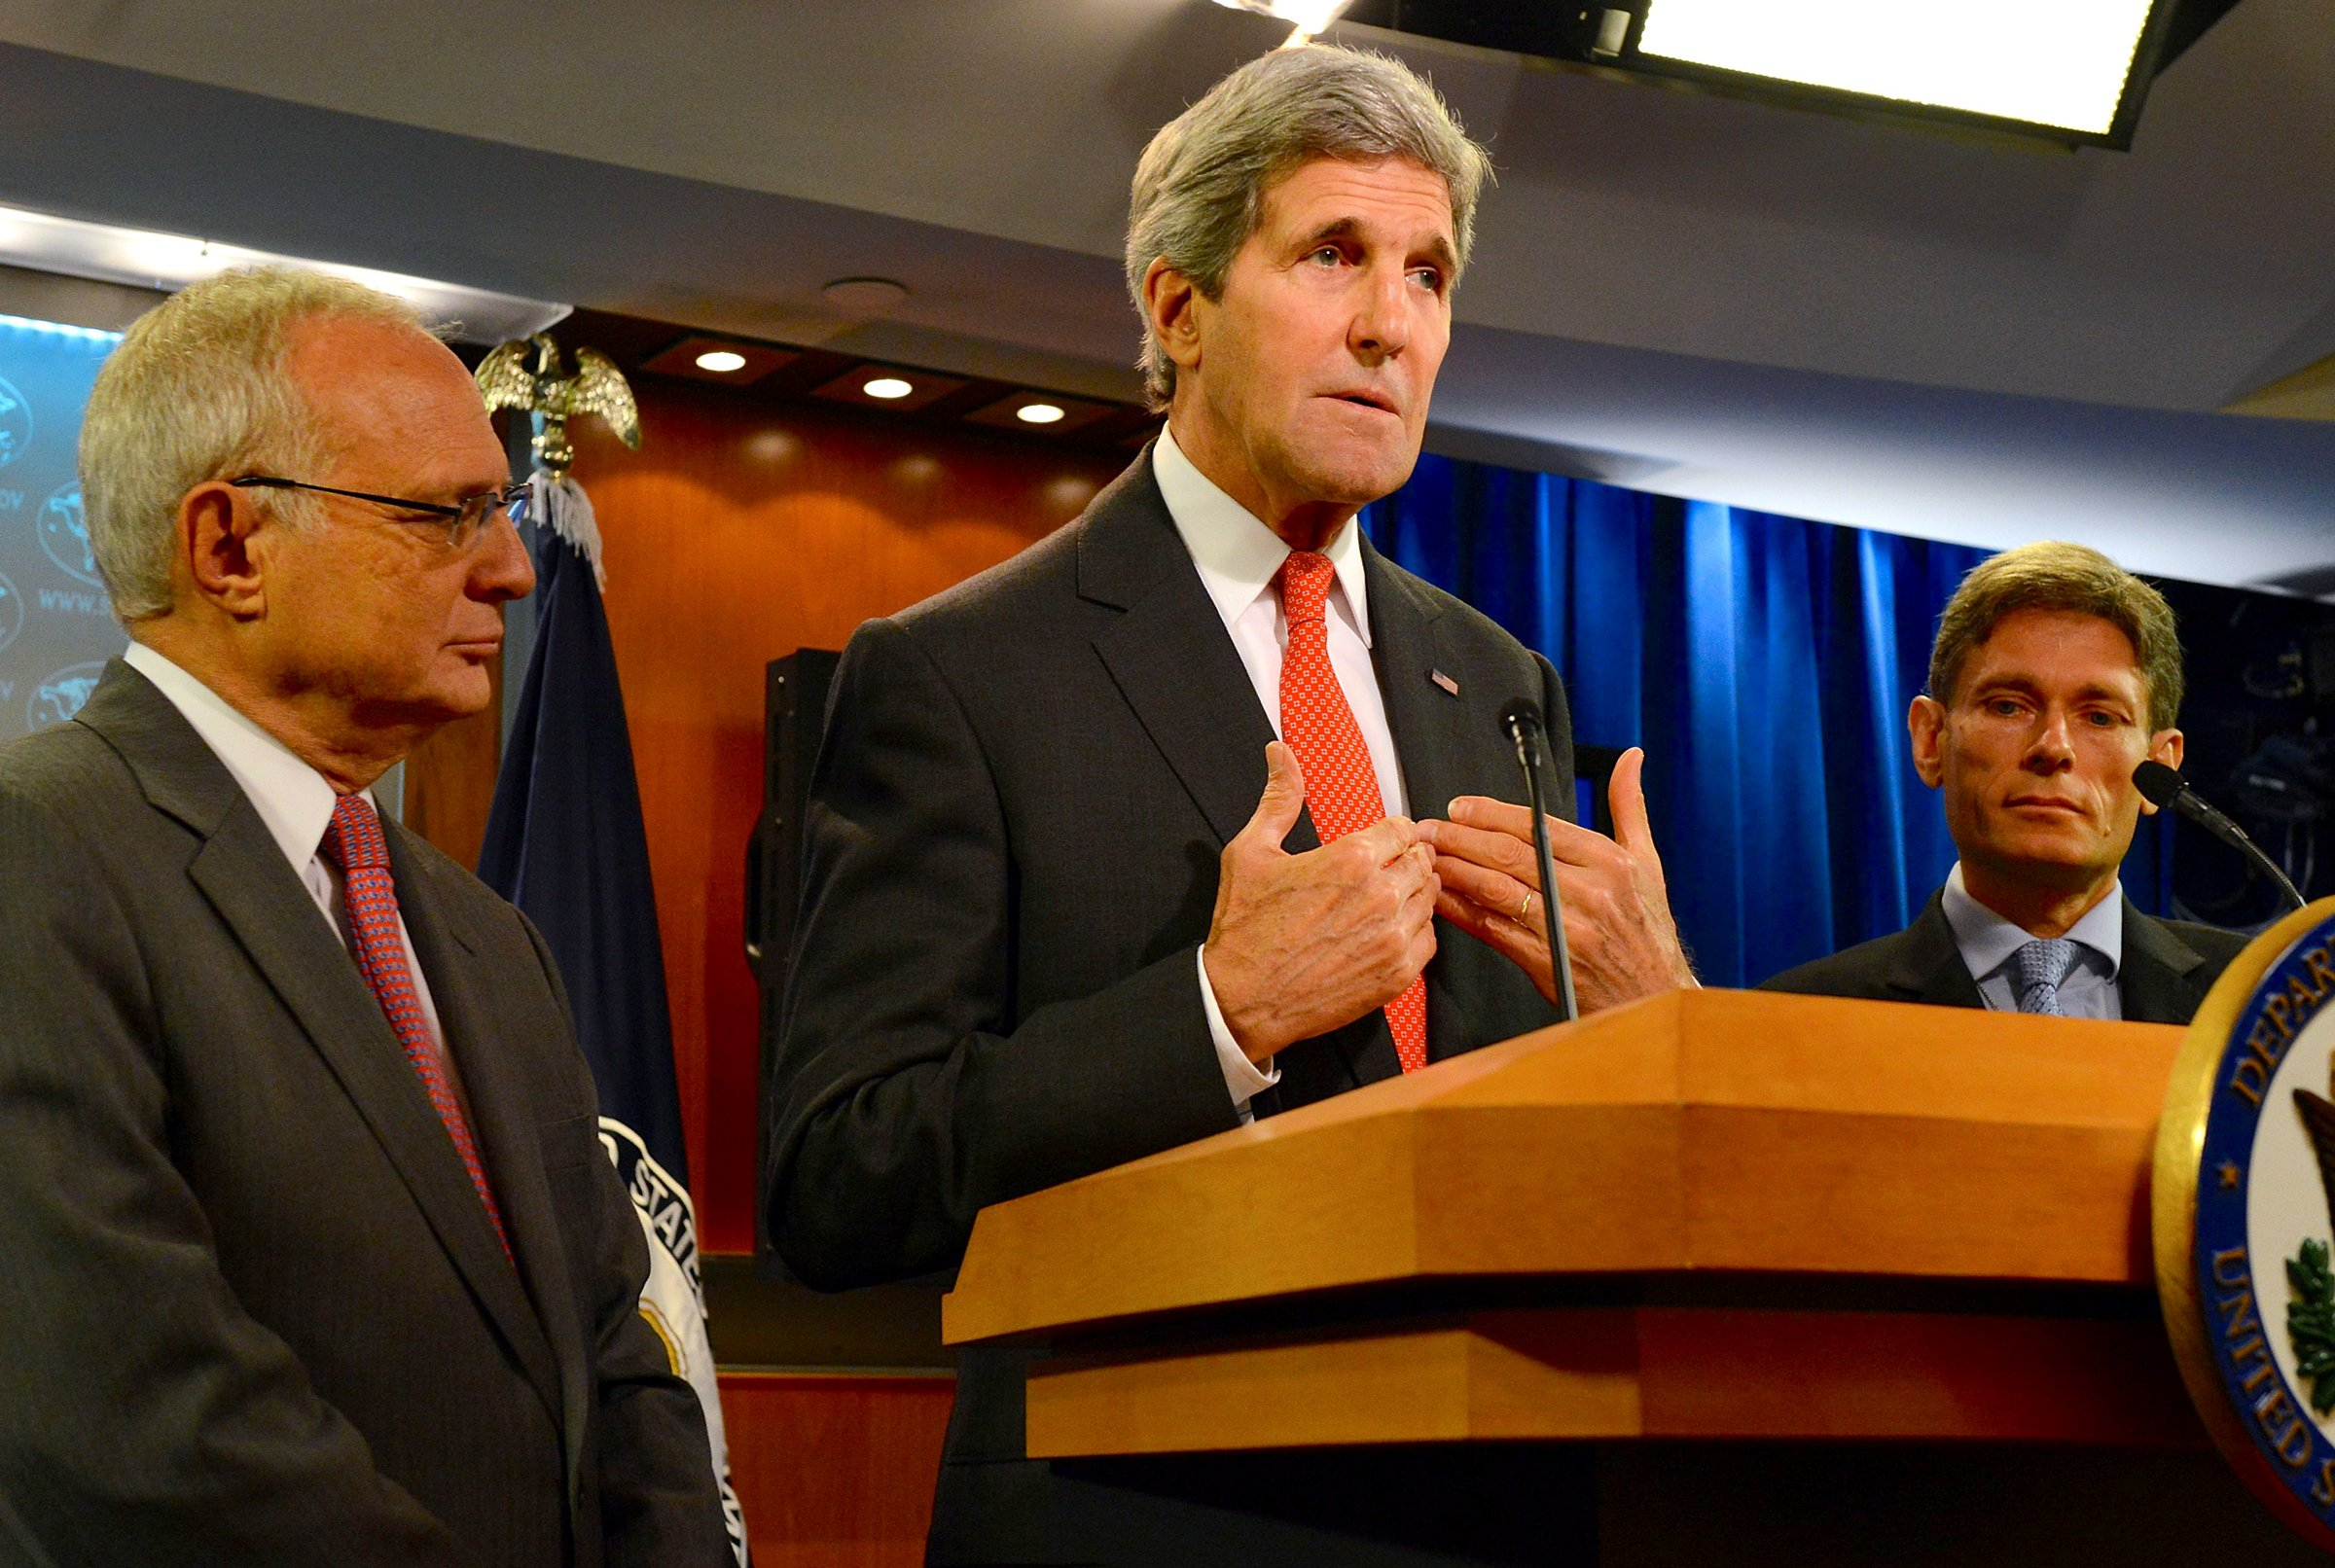 Secretary of State John Kerry at the U.S. Department of State in Washington, D.C., on July 28, 2014. Photo courtesy U.S. Department of State